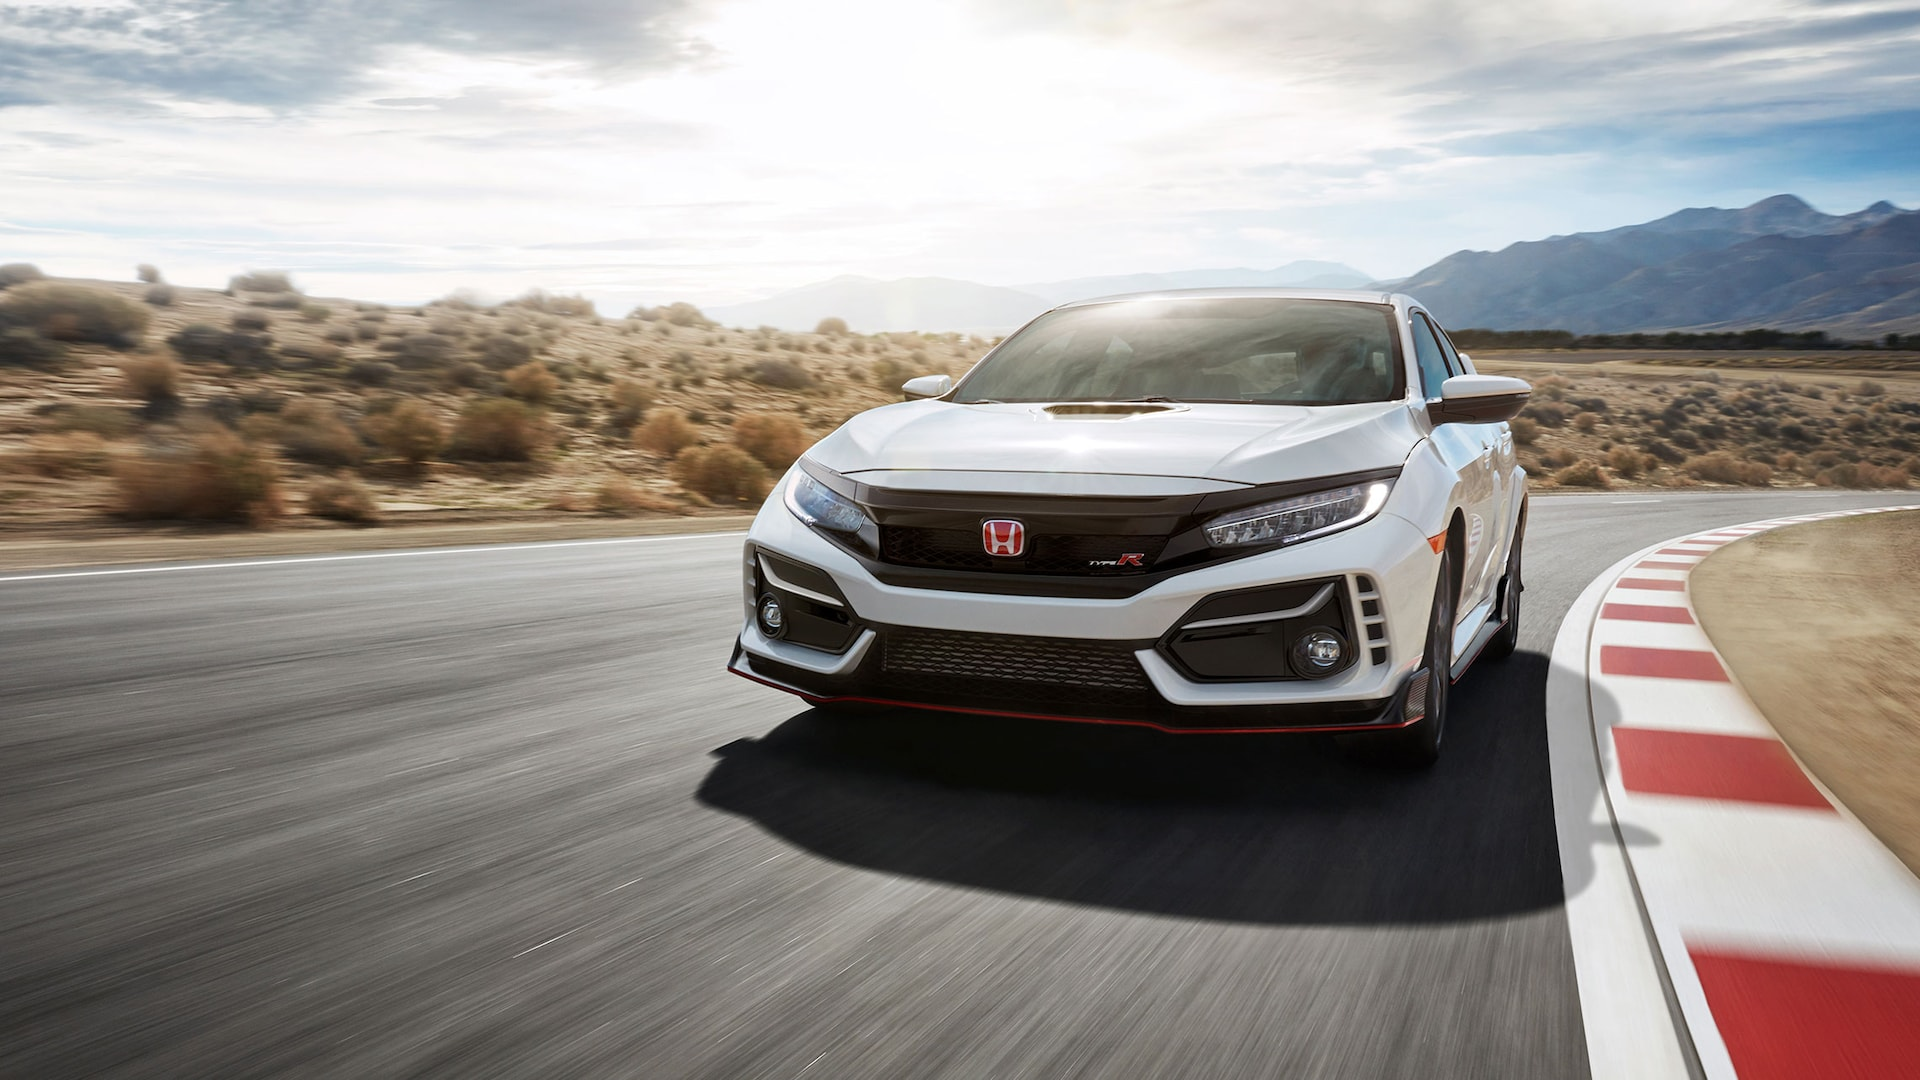 Front view of the 2021 Honda Civic Type R in Championship White, driving on desert racetrack.